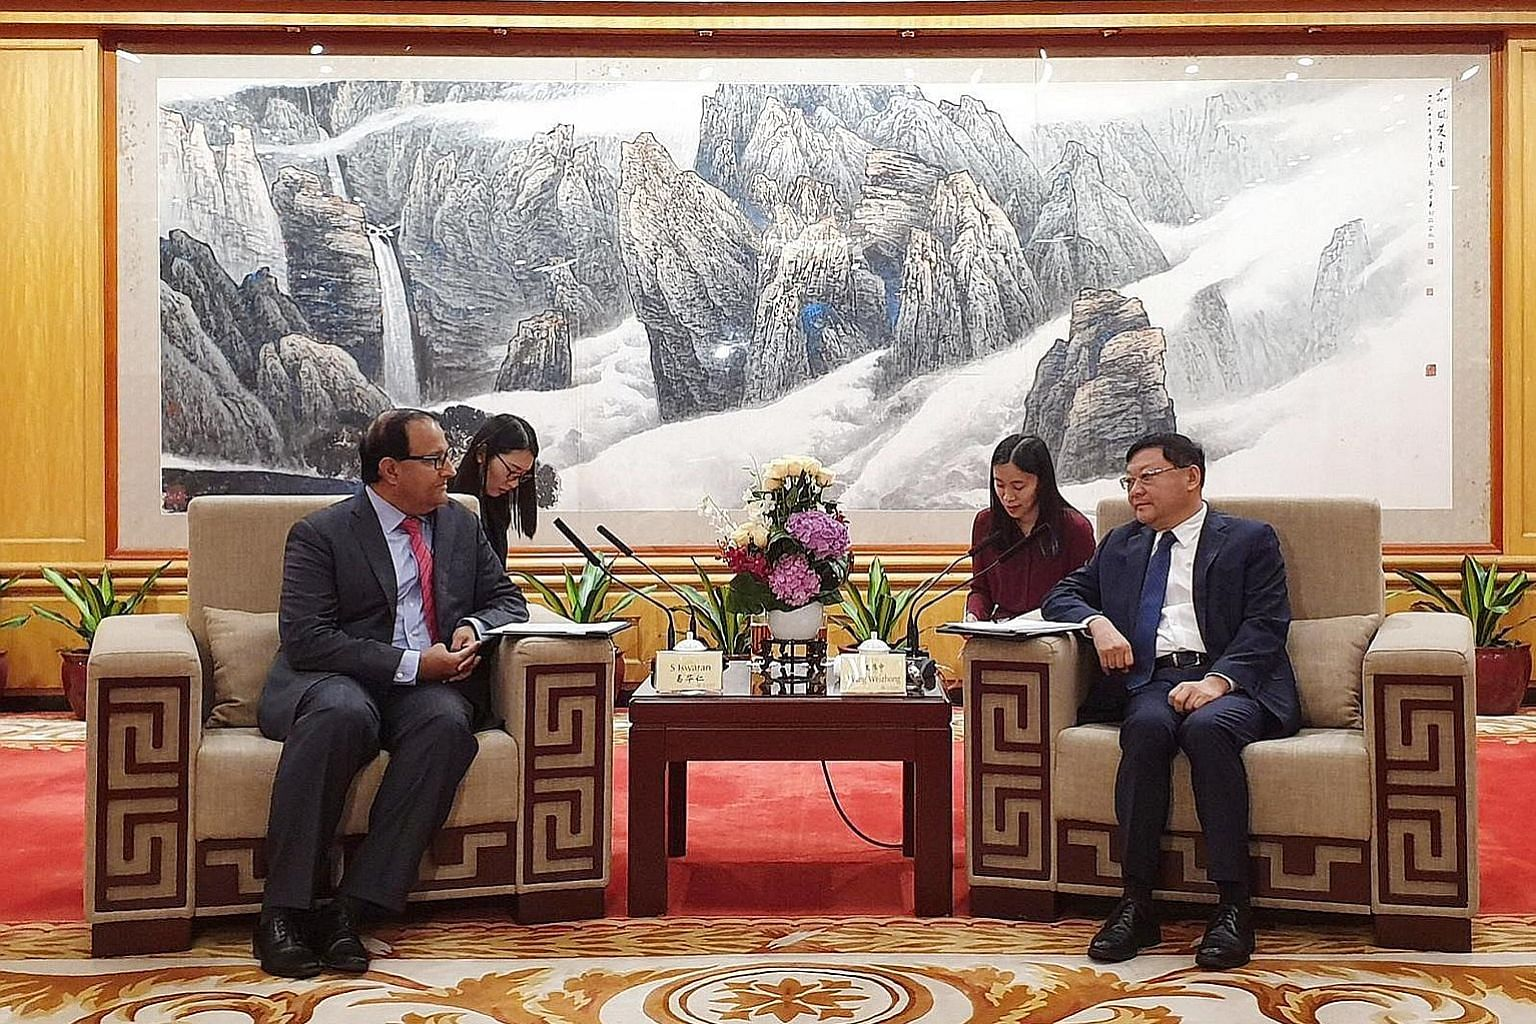 Minister for Communications and Information S. Iswaran discussing the smart city twinning initiative between Singapore and Shenzhen with the Chinese city's Communist Party secretary Wang Weizhong yesterday.